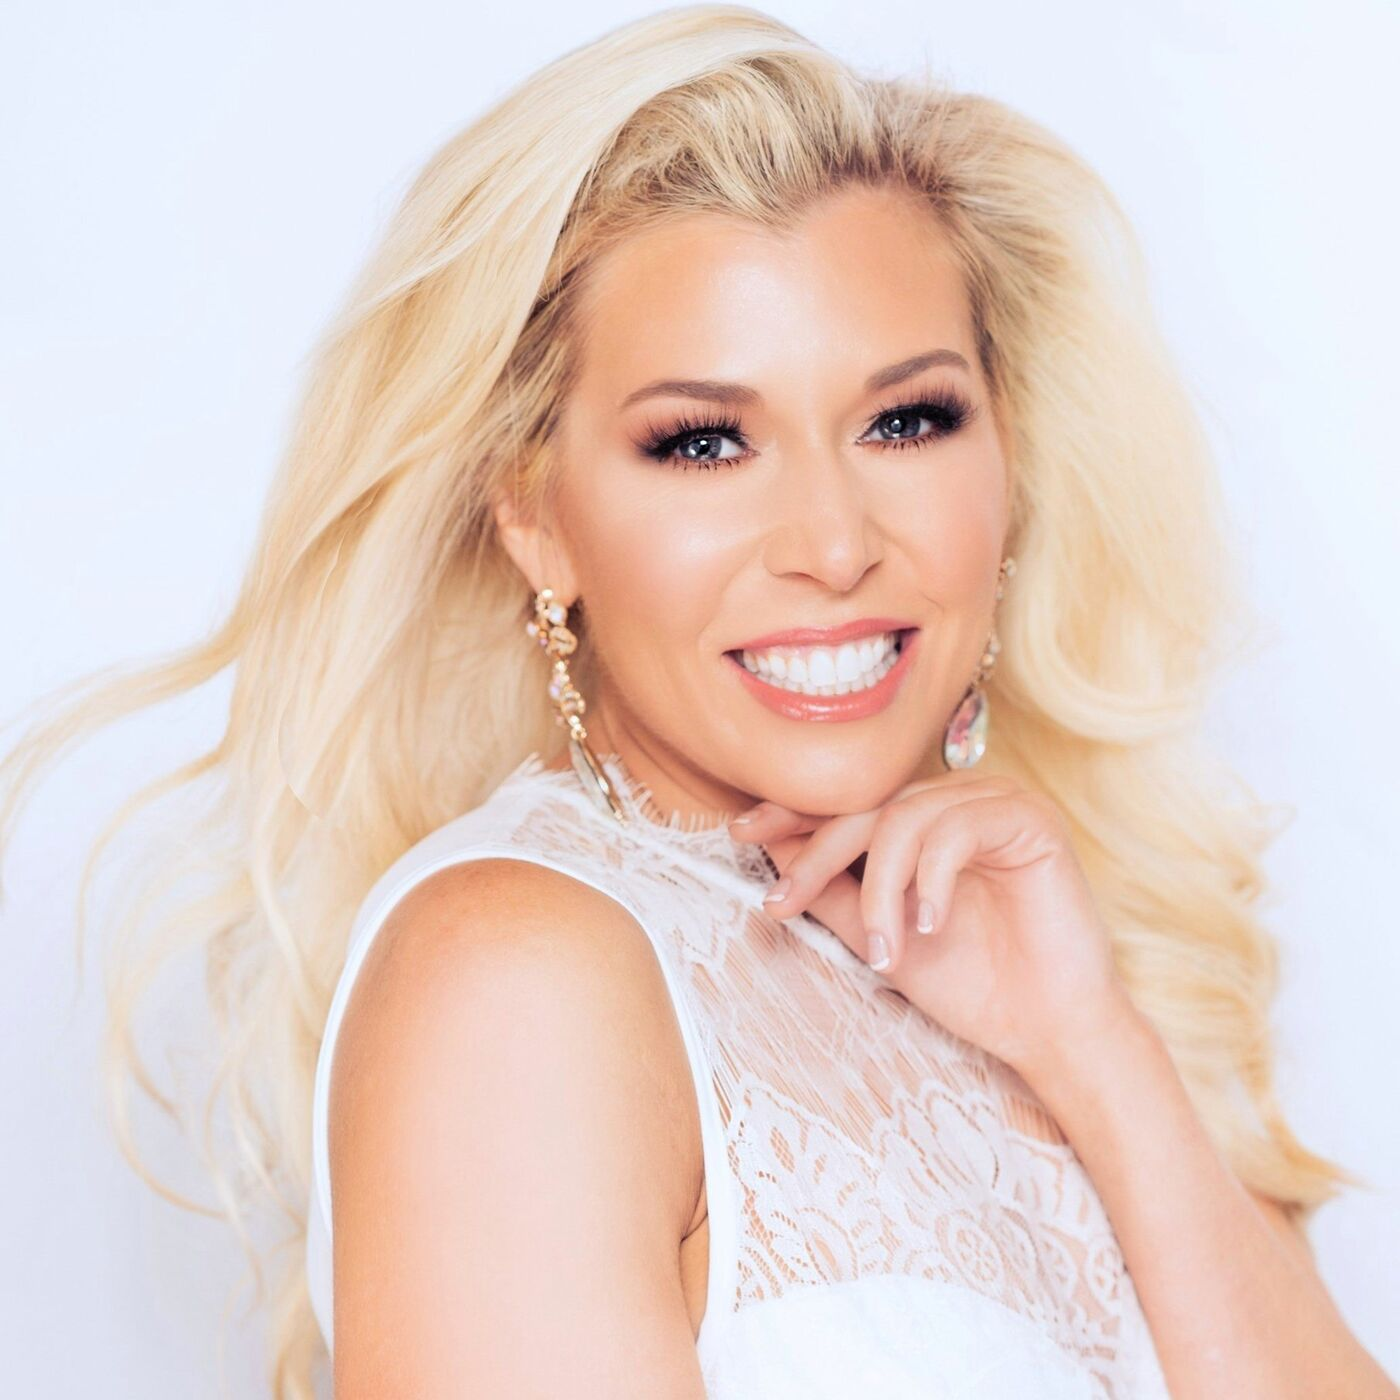 Dr. Corrine Devin, International Ms. 2020 shares her tips and tricks in pageantry and beyond....